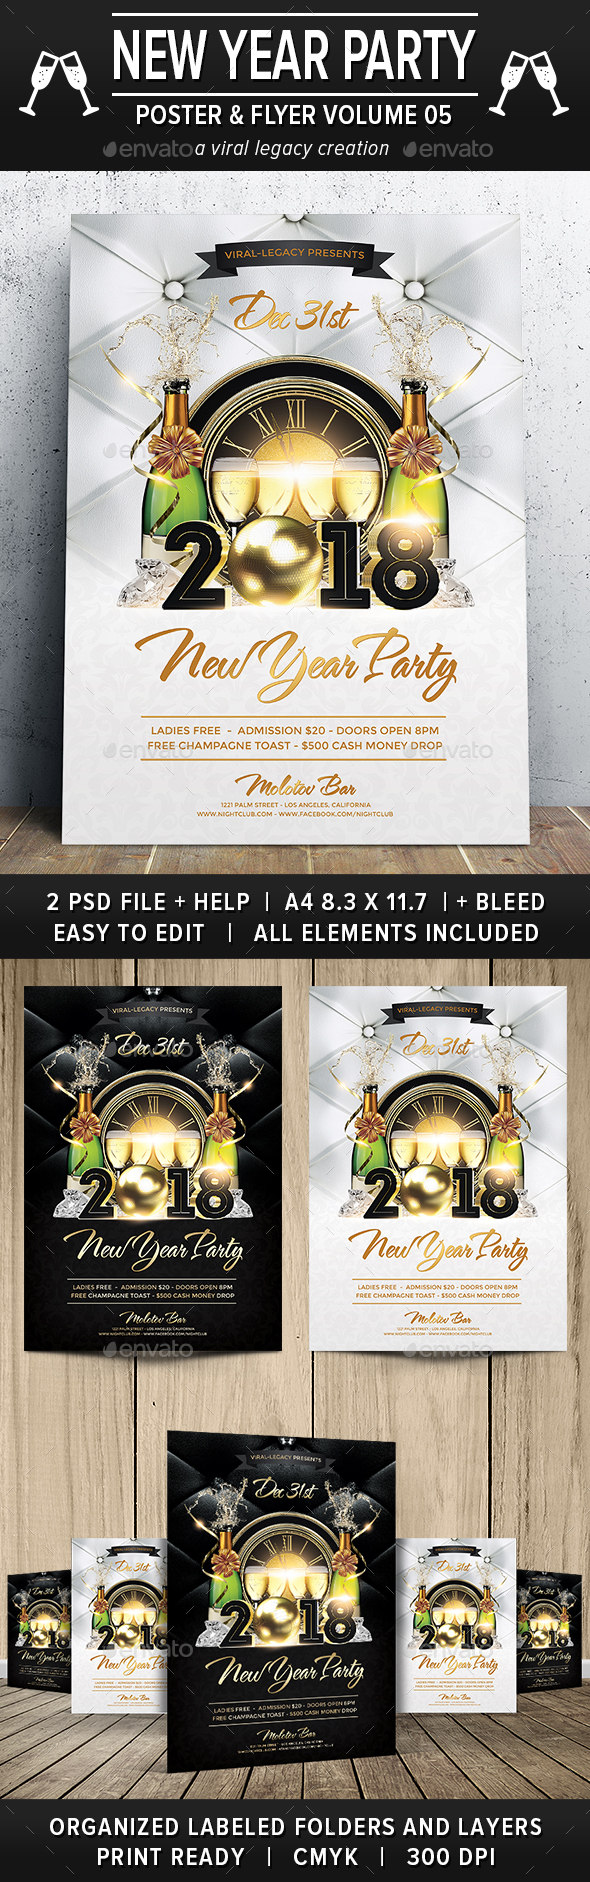 New Year Party Poster / Flyer V05 - Flyers Print Templates